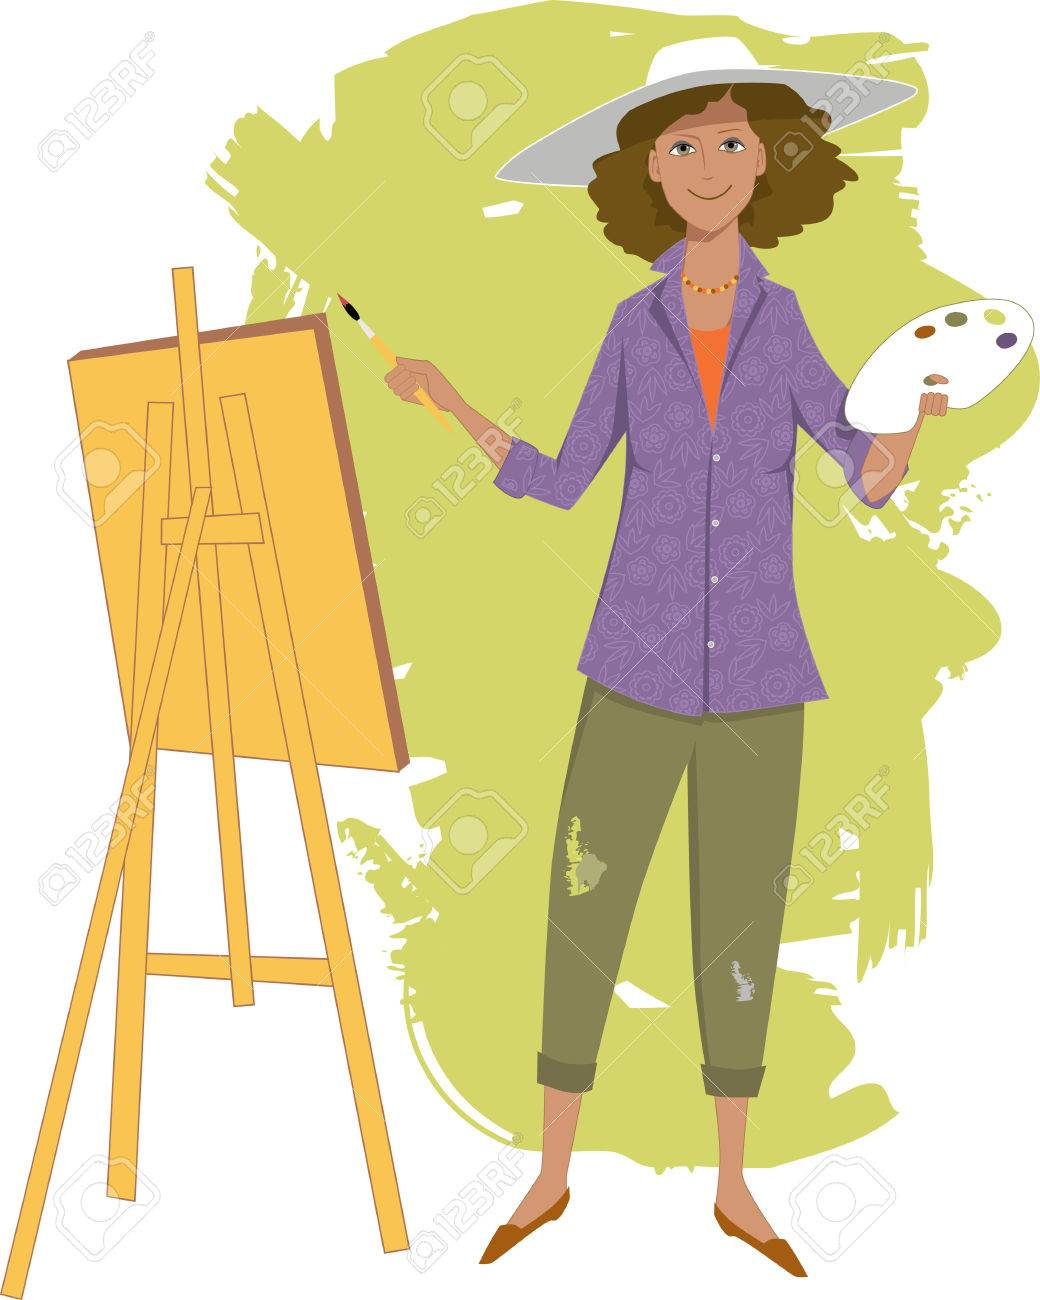 Female artist painting.